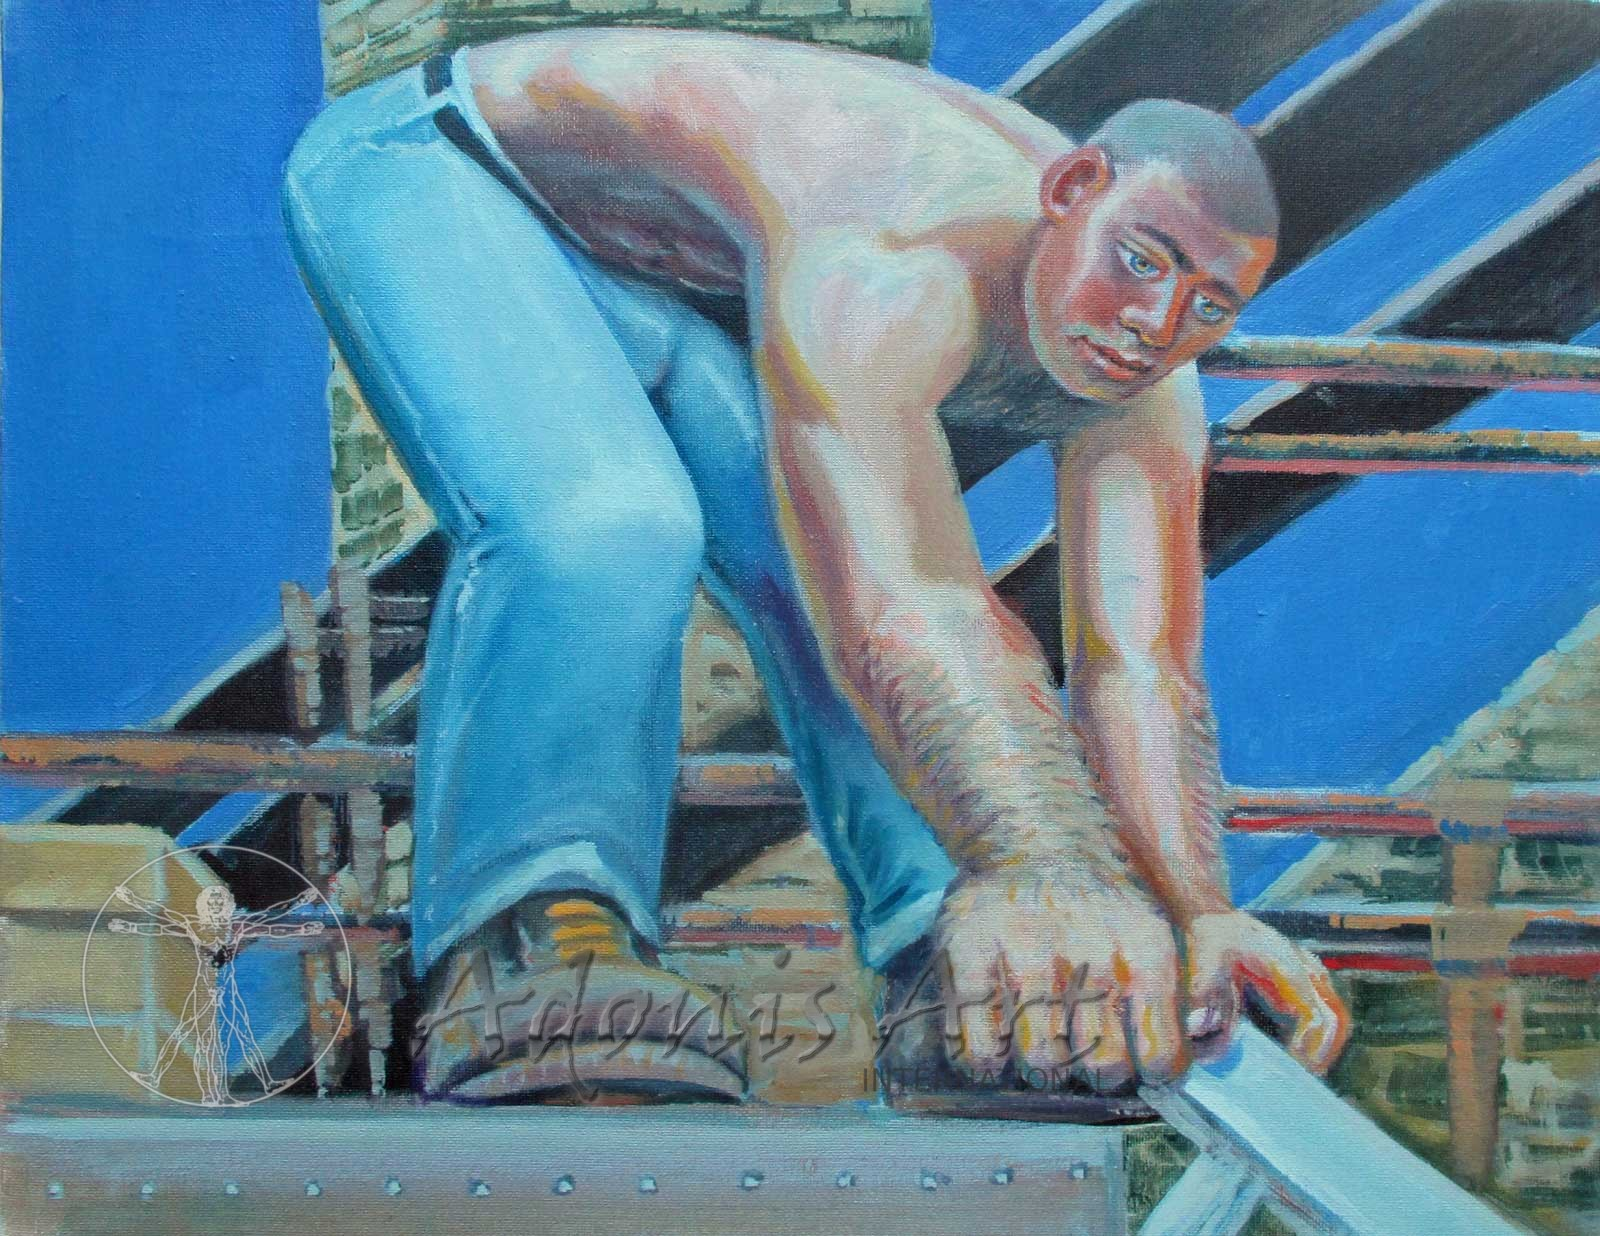 'Roofer' by Peter John Davies